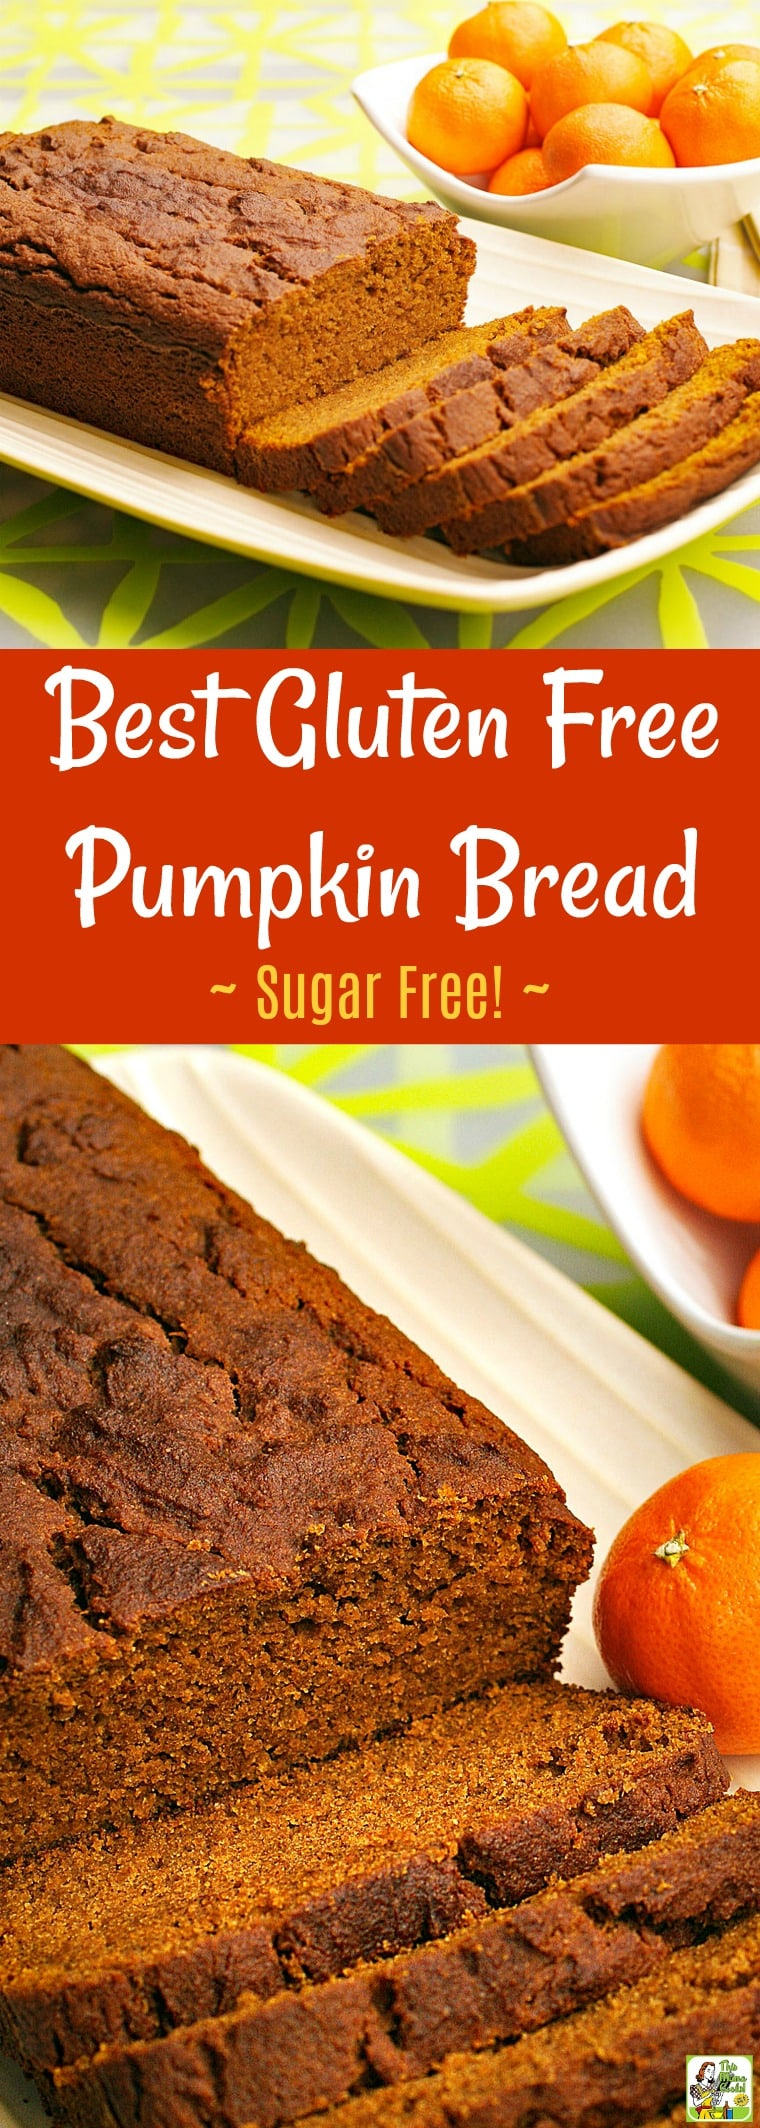 Looking for a  quick gluten free pumpkin bread recipe? This best gluten free pumpkin bread recipe is also sugar free! This easy to make pumpkin bread recipe makes 2 loaves! It's also healthy, delicious and filled with fiber.